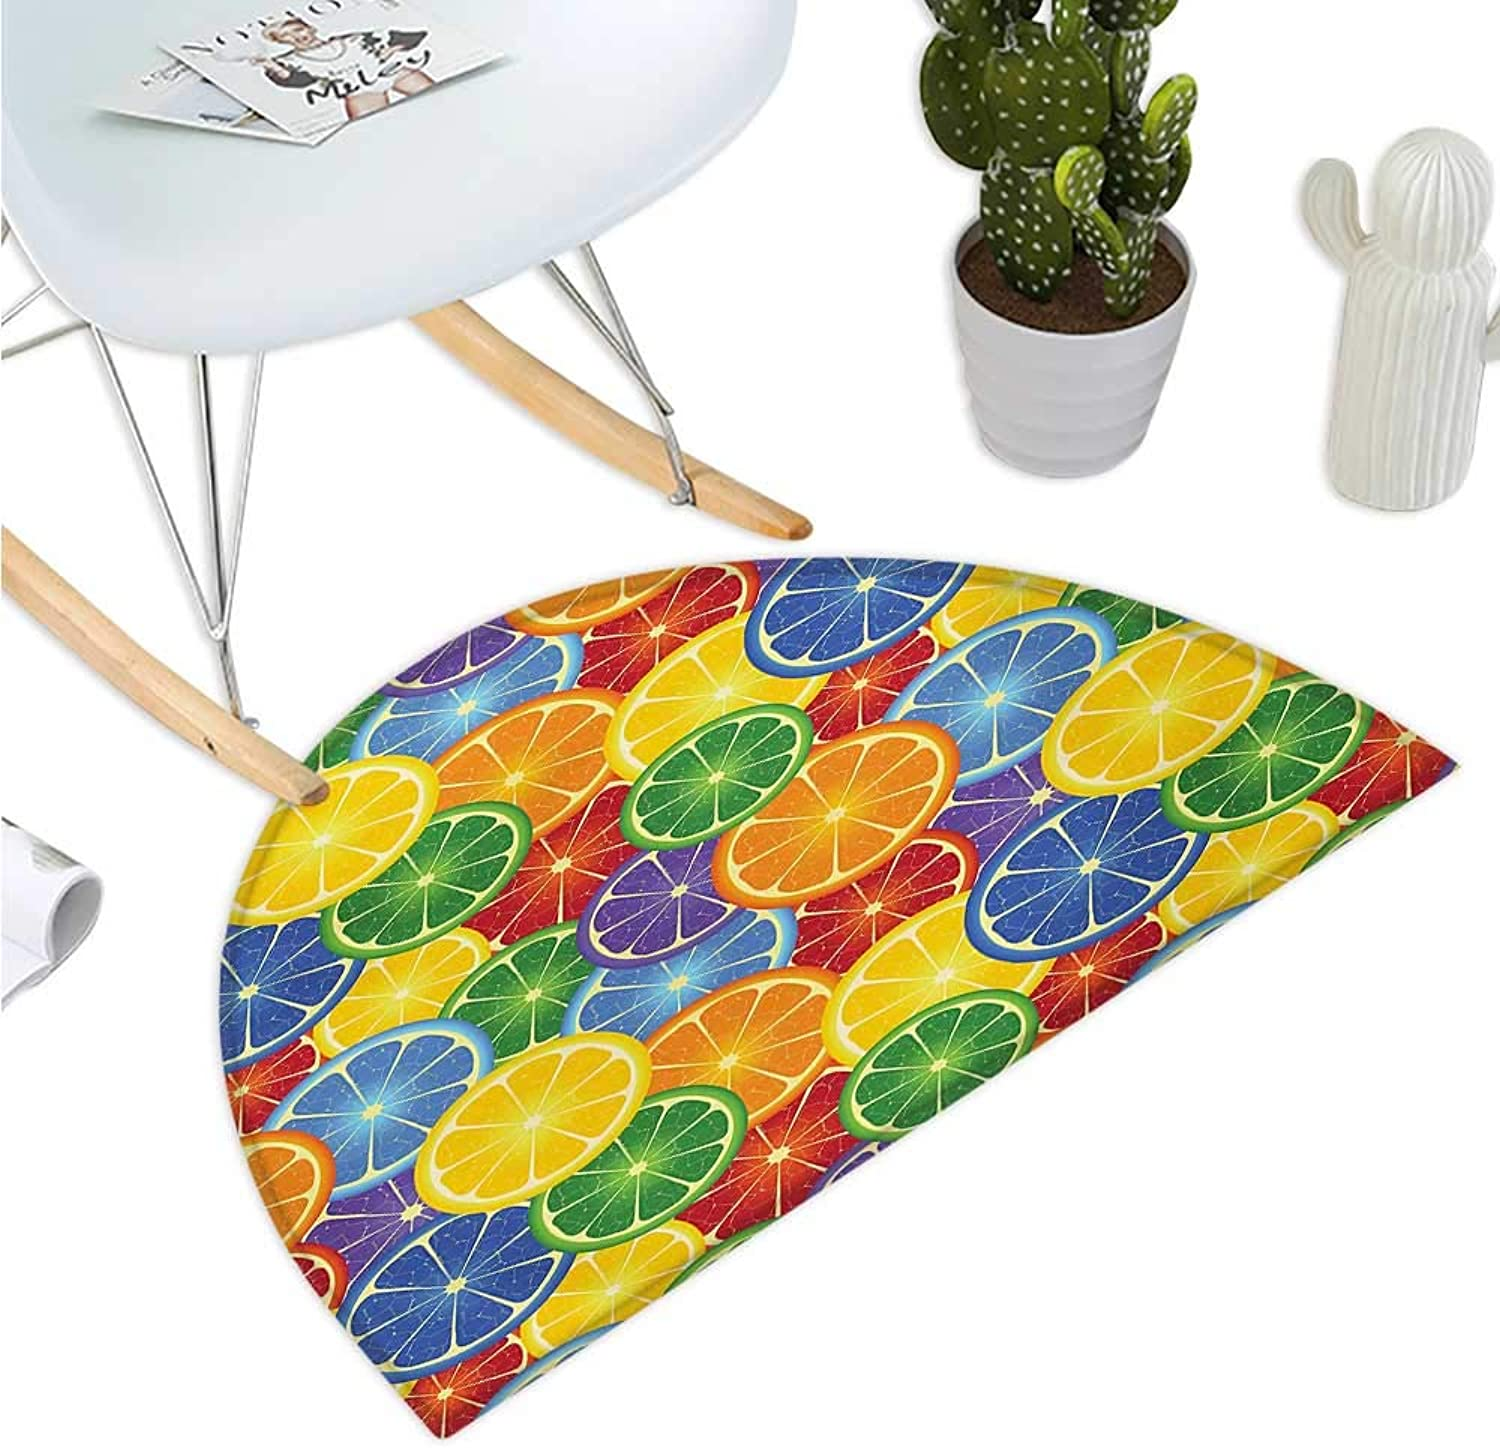 Abstract Semicircular Cushion colorful Slices of orange Tropical Fruit Rainbow color Fun Artful Design Bathroom Mat H 35.4  xD 53.1  Yellow bluee Green